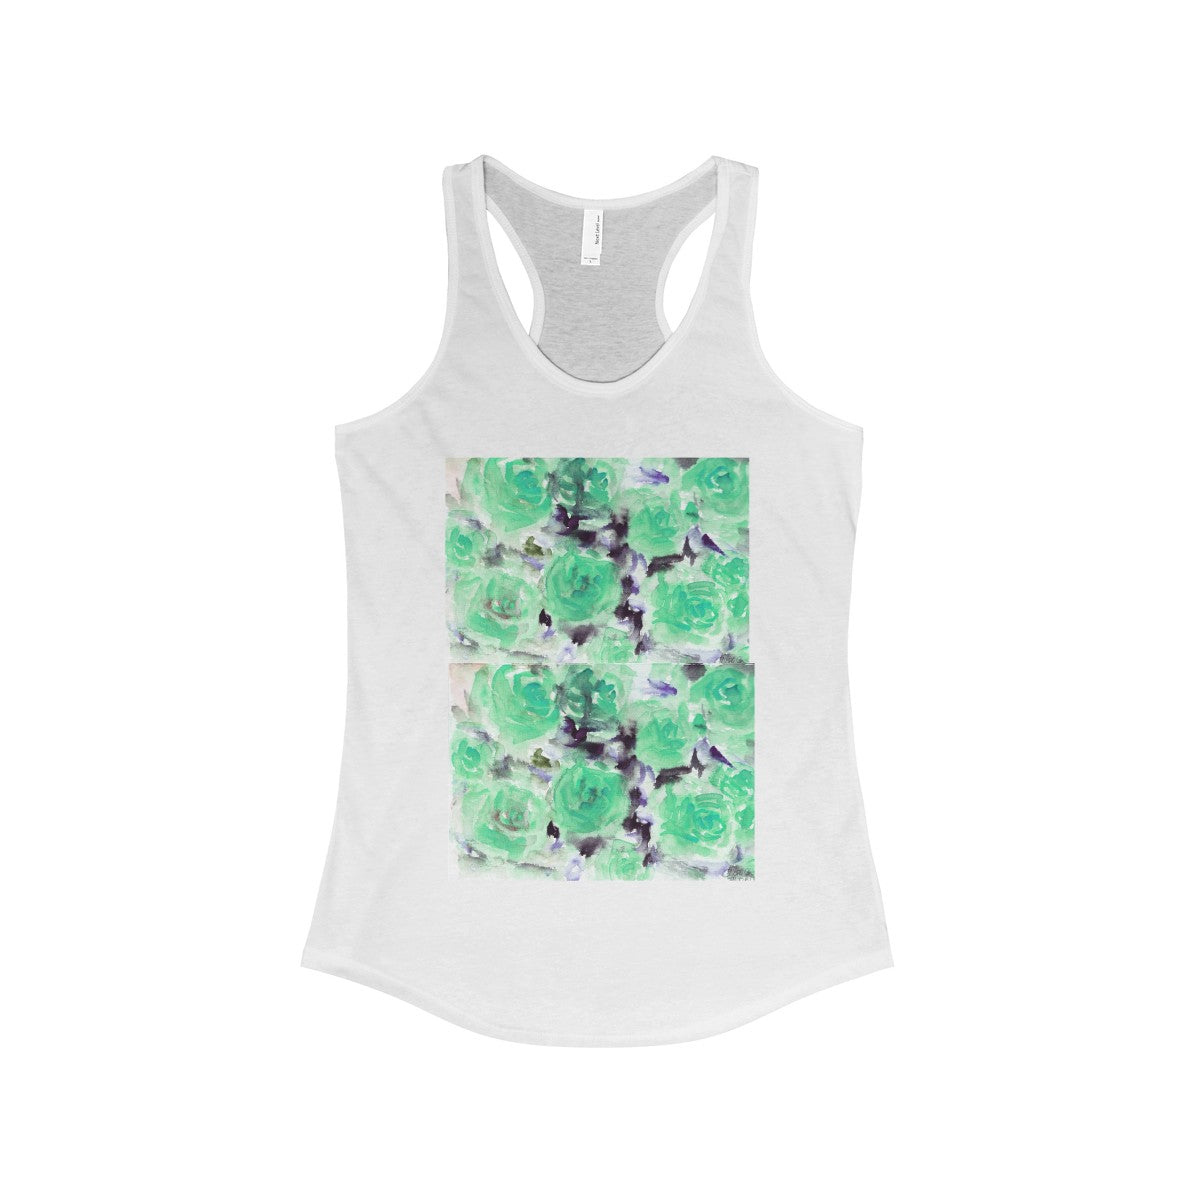 Nobusuke Ice Blue Rose Floral Women's Ideal Racerback Tank -Made in the U.S.A. (US Size: XS-2XL) - Heidi Kimura Art LLC